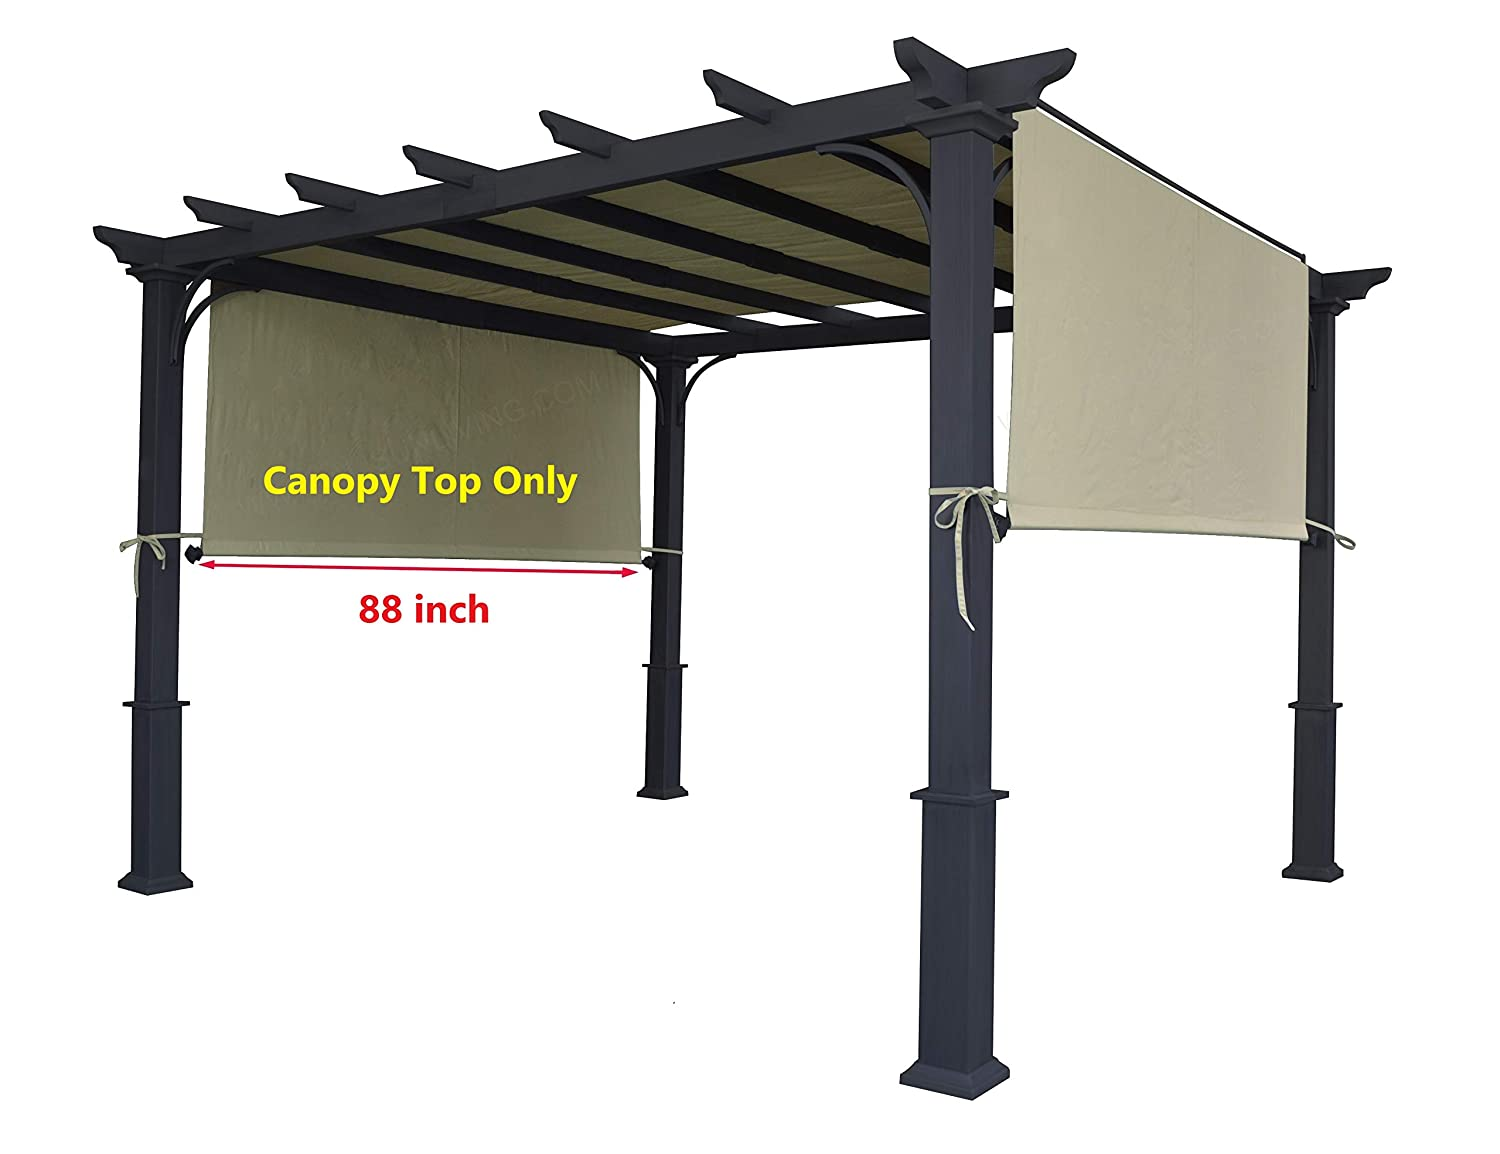 ALISUN Universal Pergola Canopy Top for 8' x 10' Pergola Structure - Beige (Canopy Top Only, Size: 196 x 88) Size: 196 x 88)